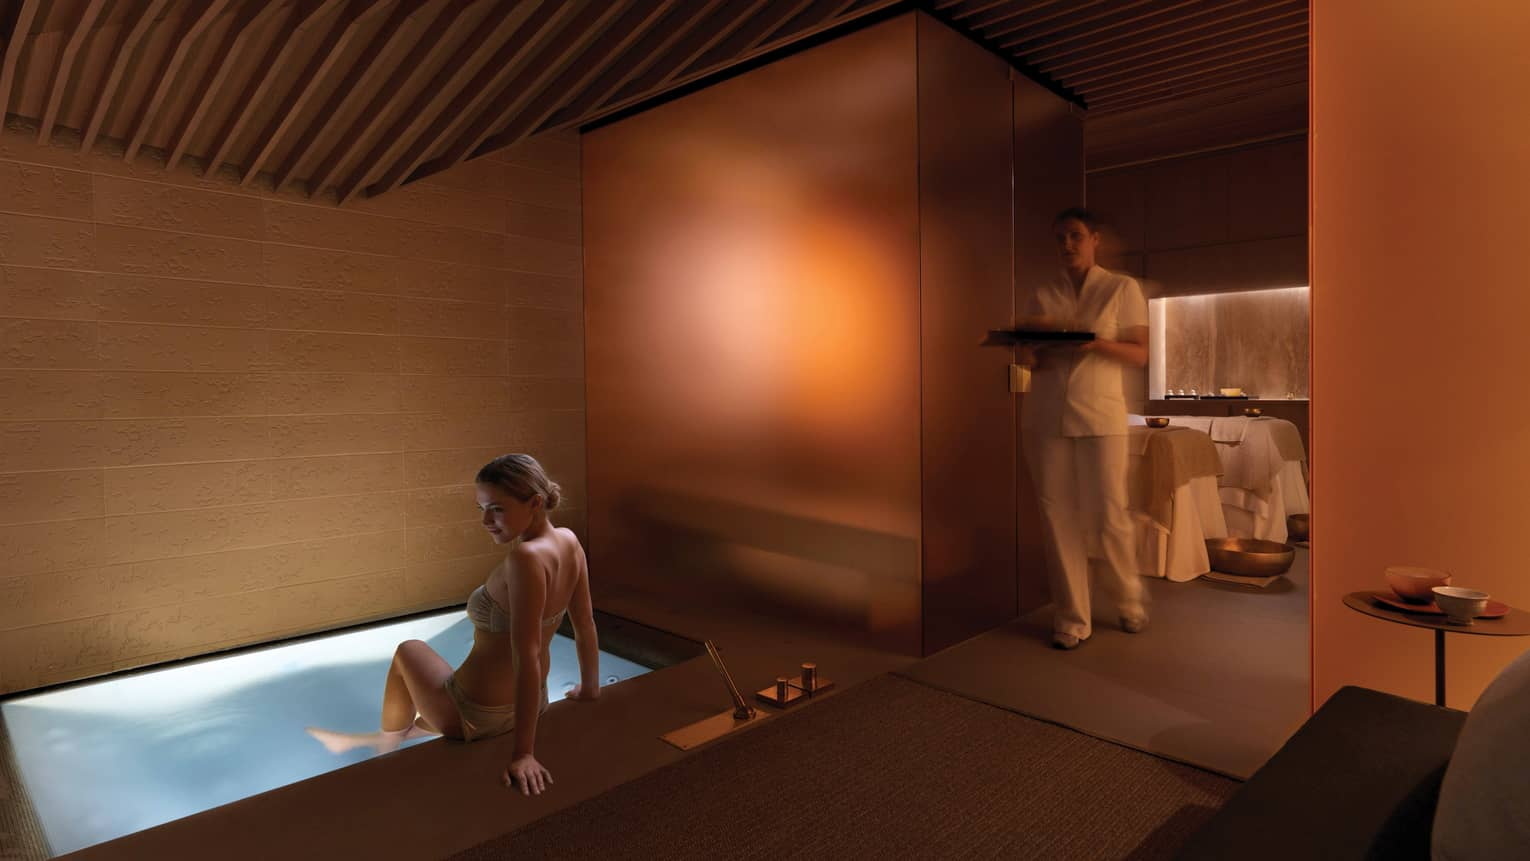 Woman in bikini lowers herself into small illuminated spa tub, staff holds tray in background